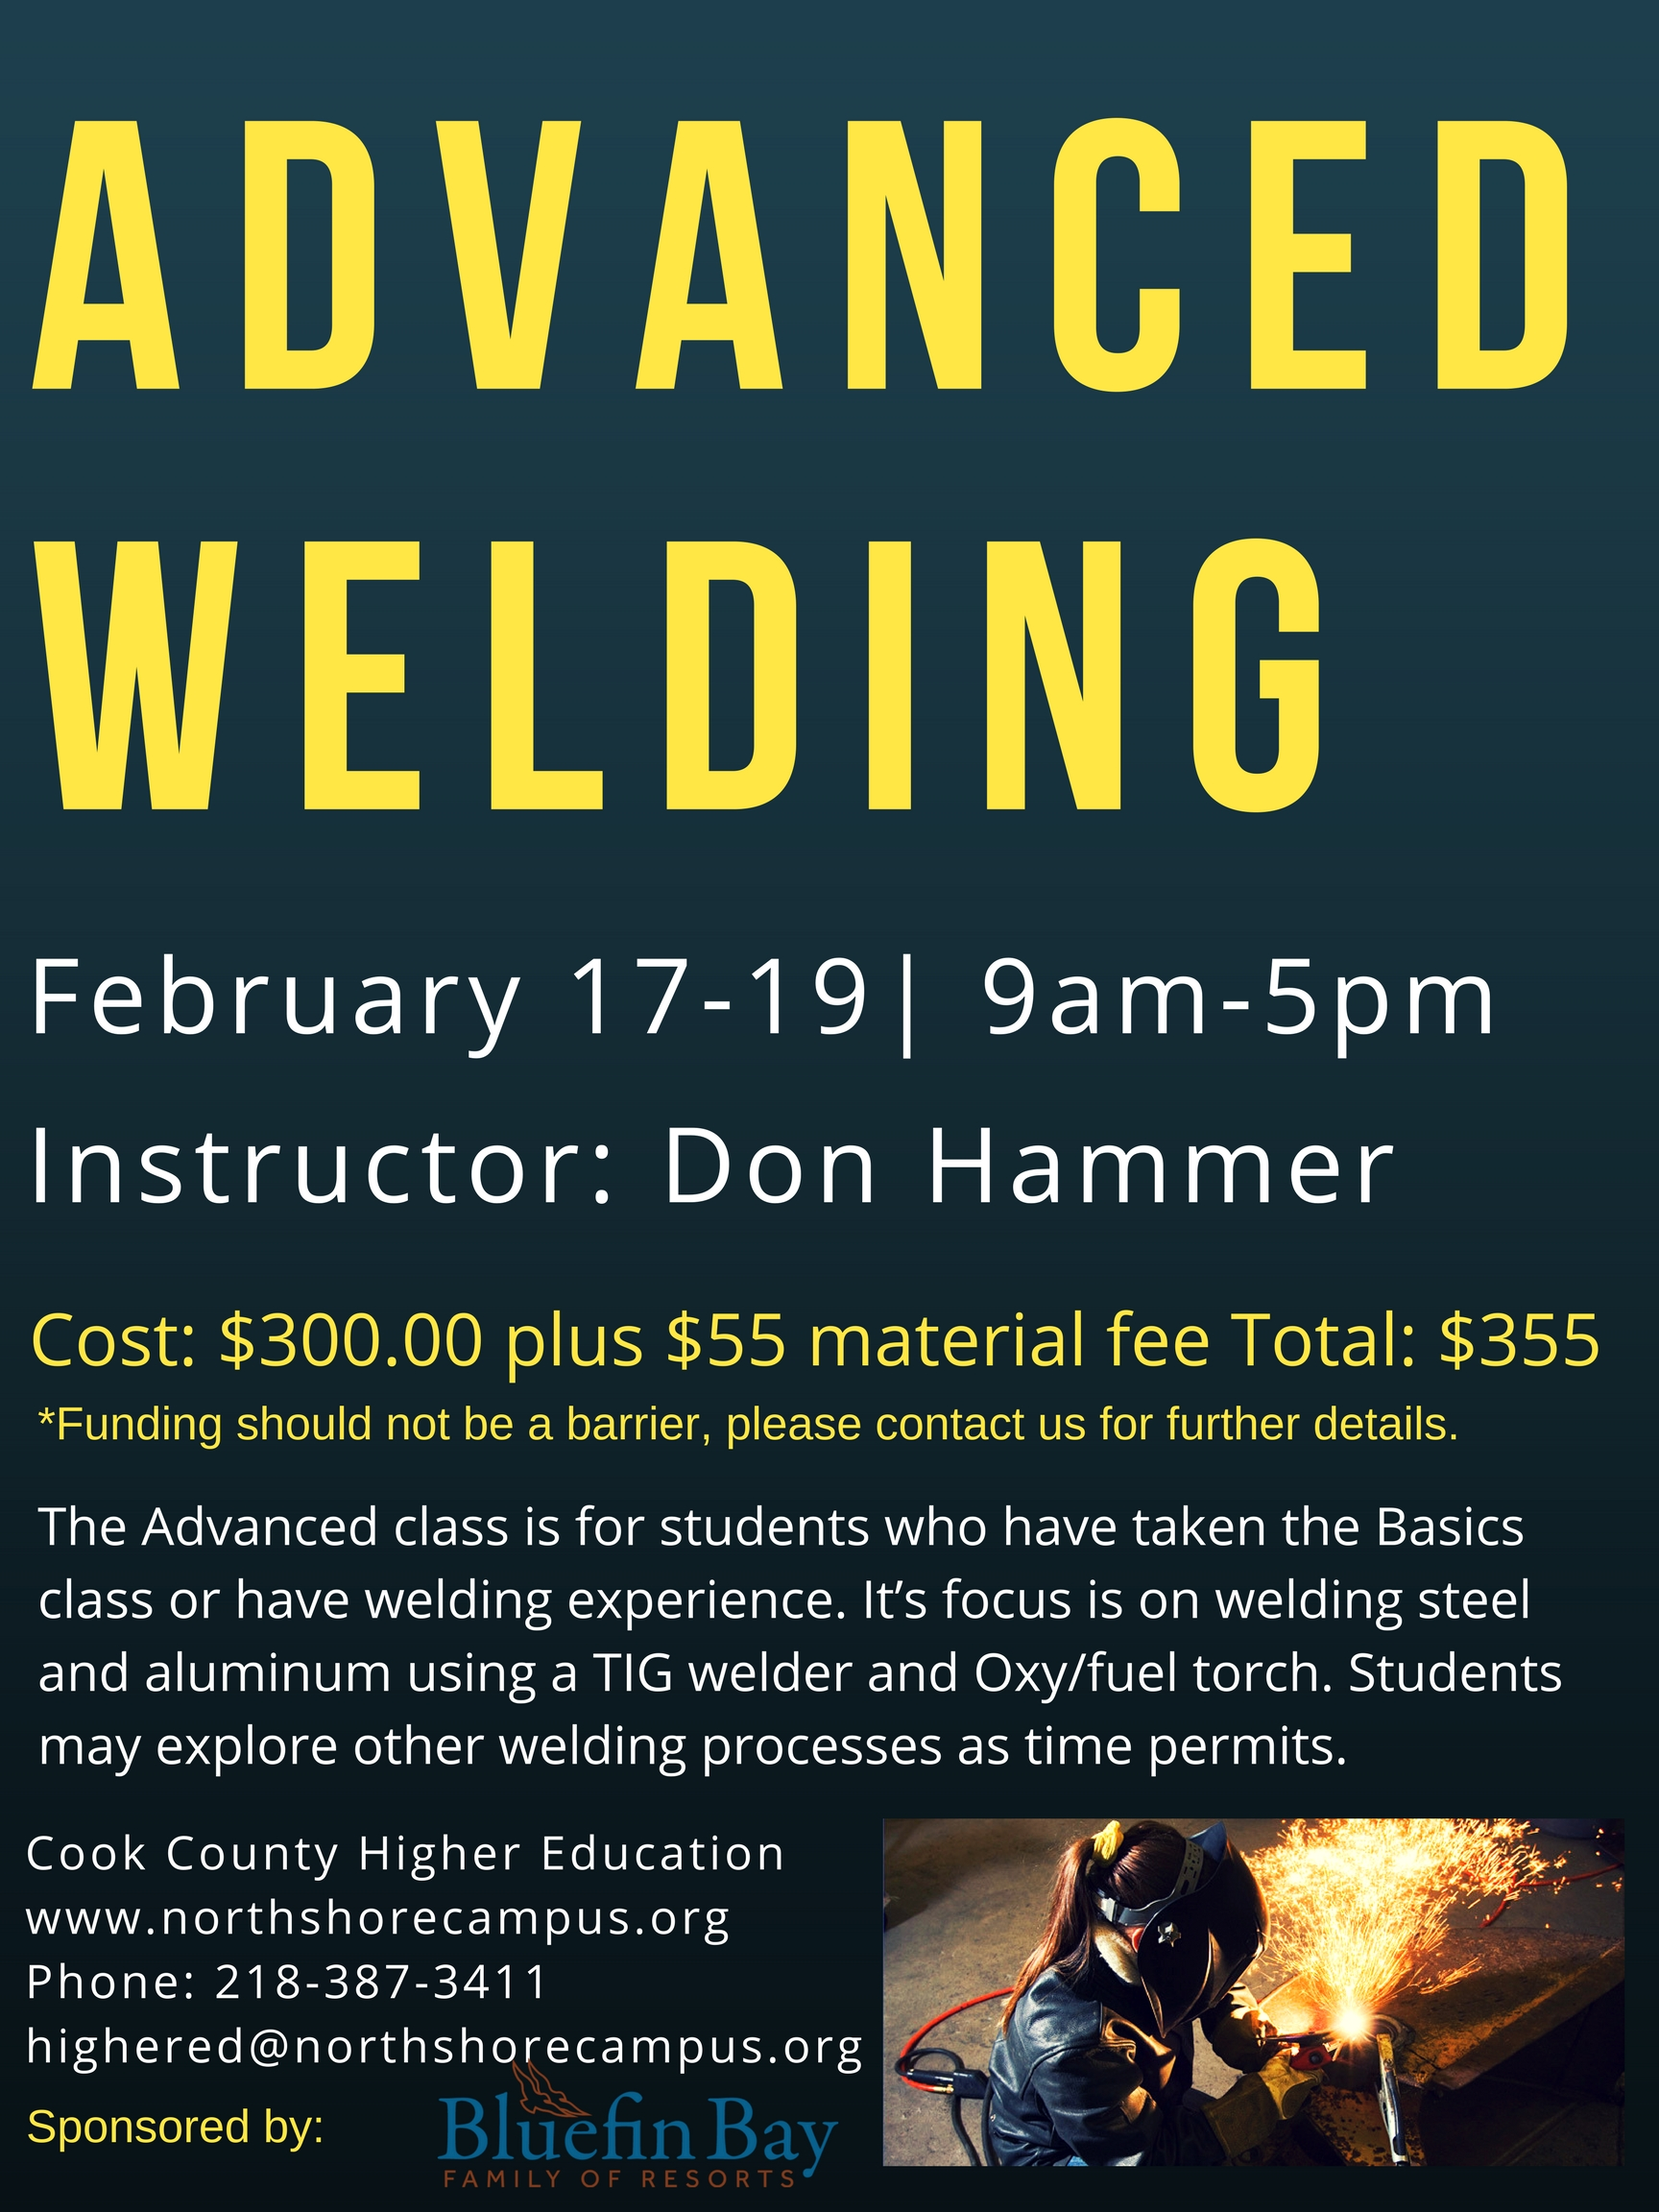 Advanced 20welding